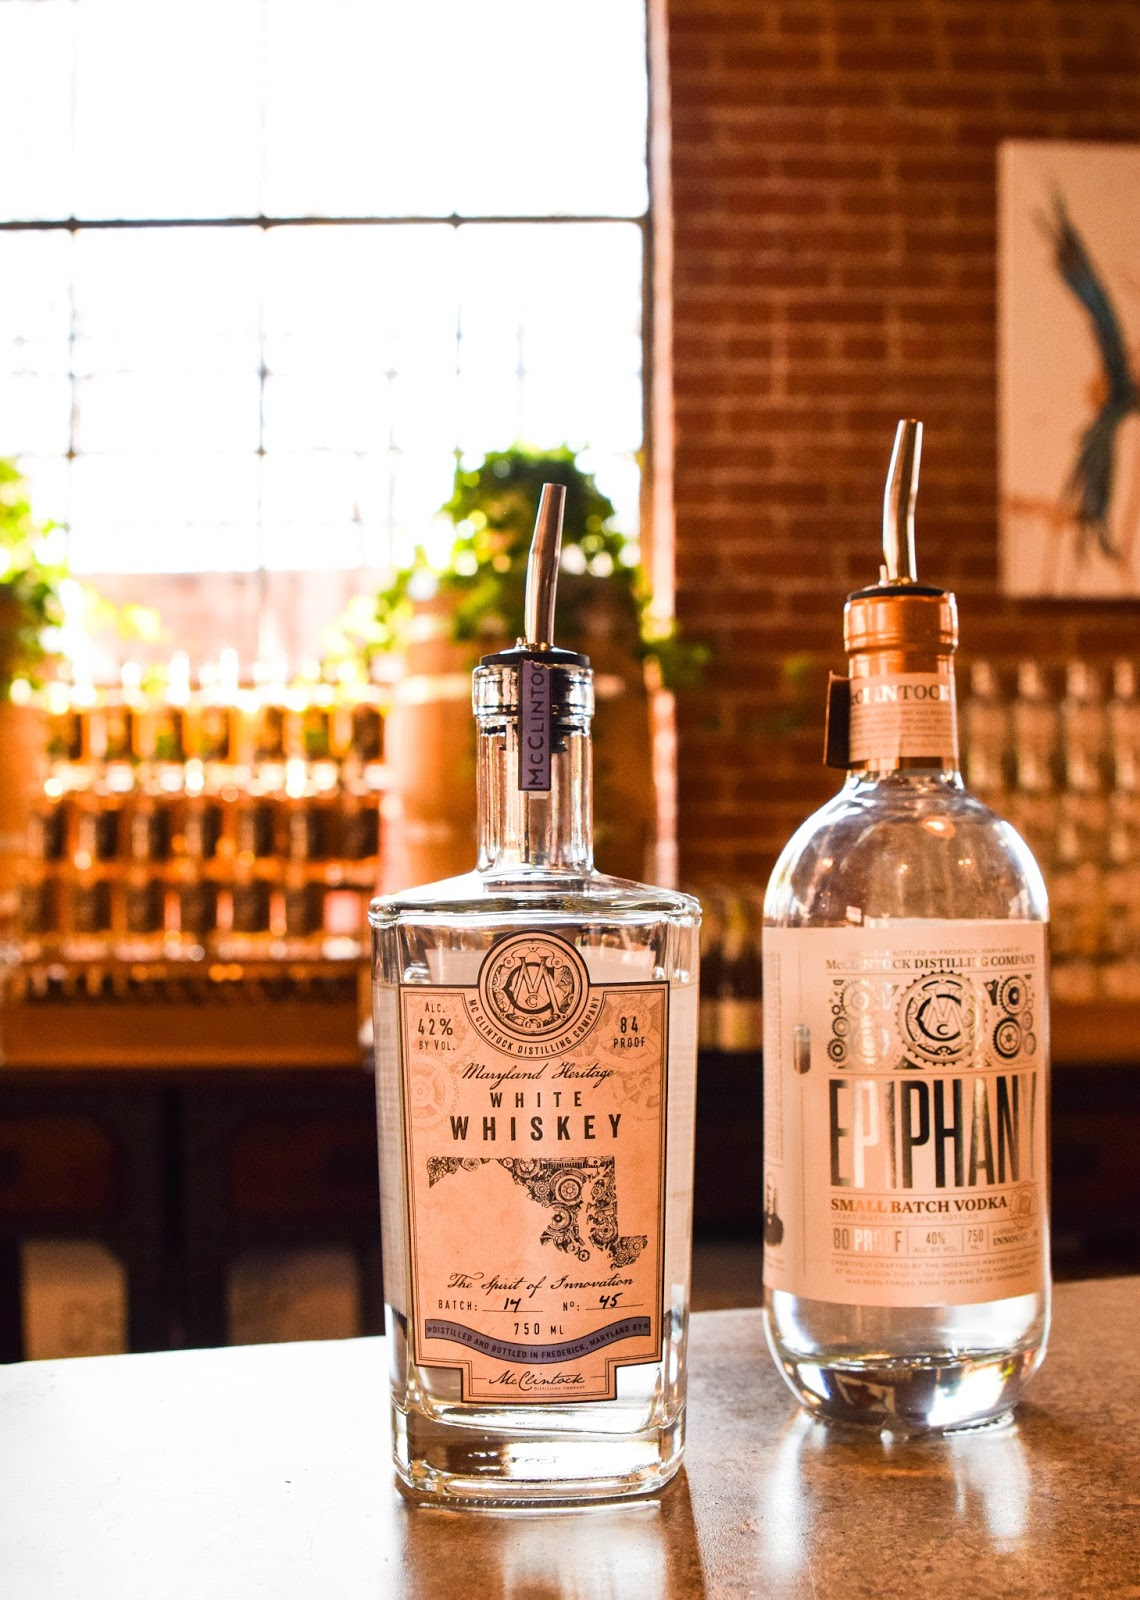 frederick maryland travel guide - visit frederick - frederick maryland distillery - romantic frederick maryland